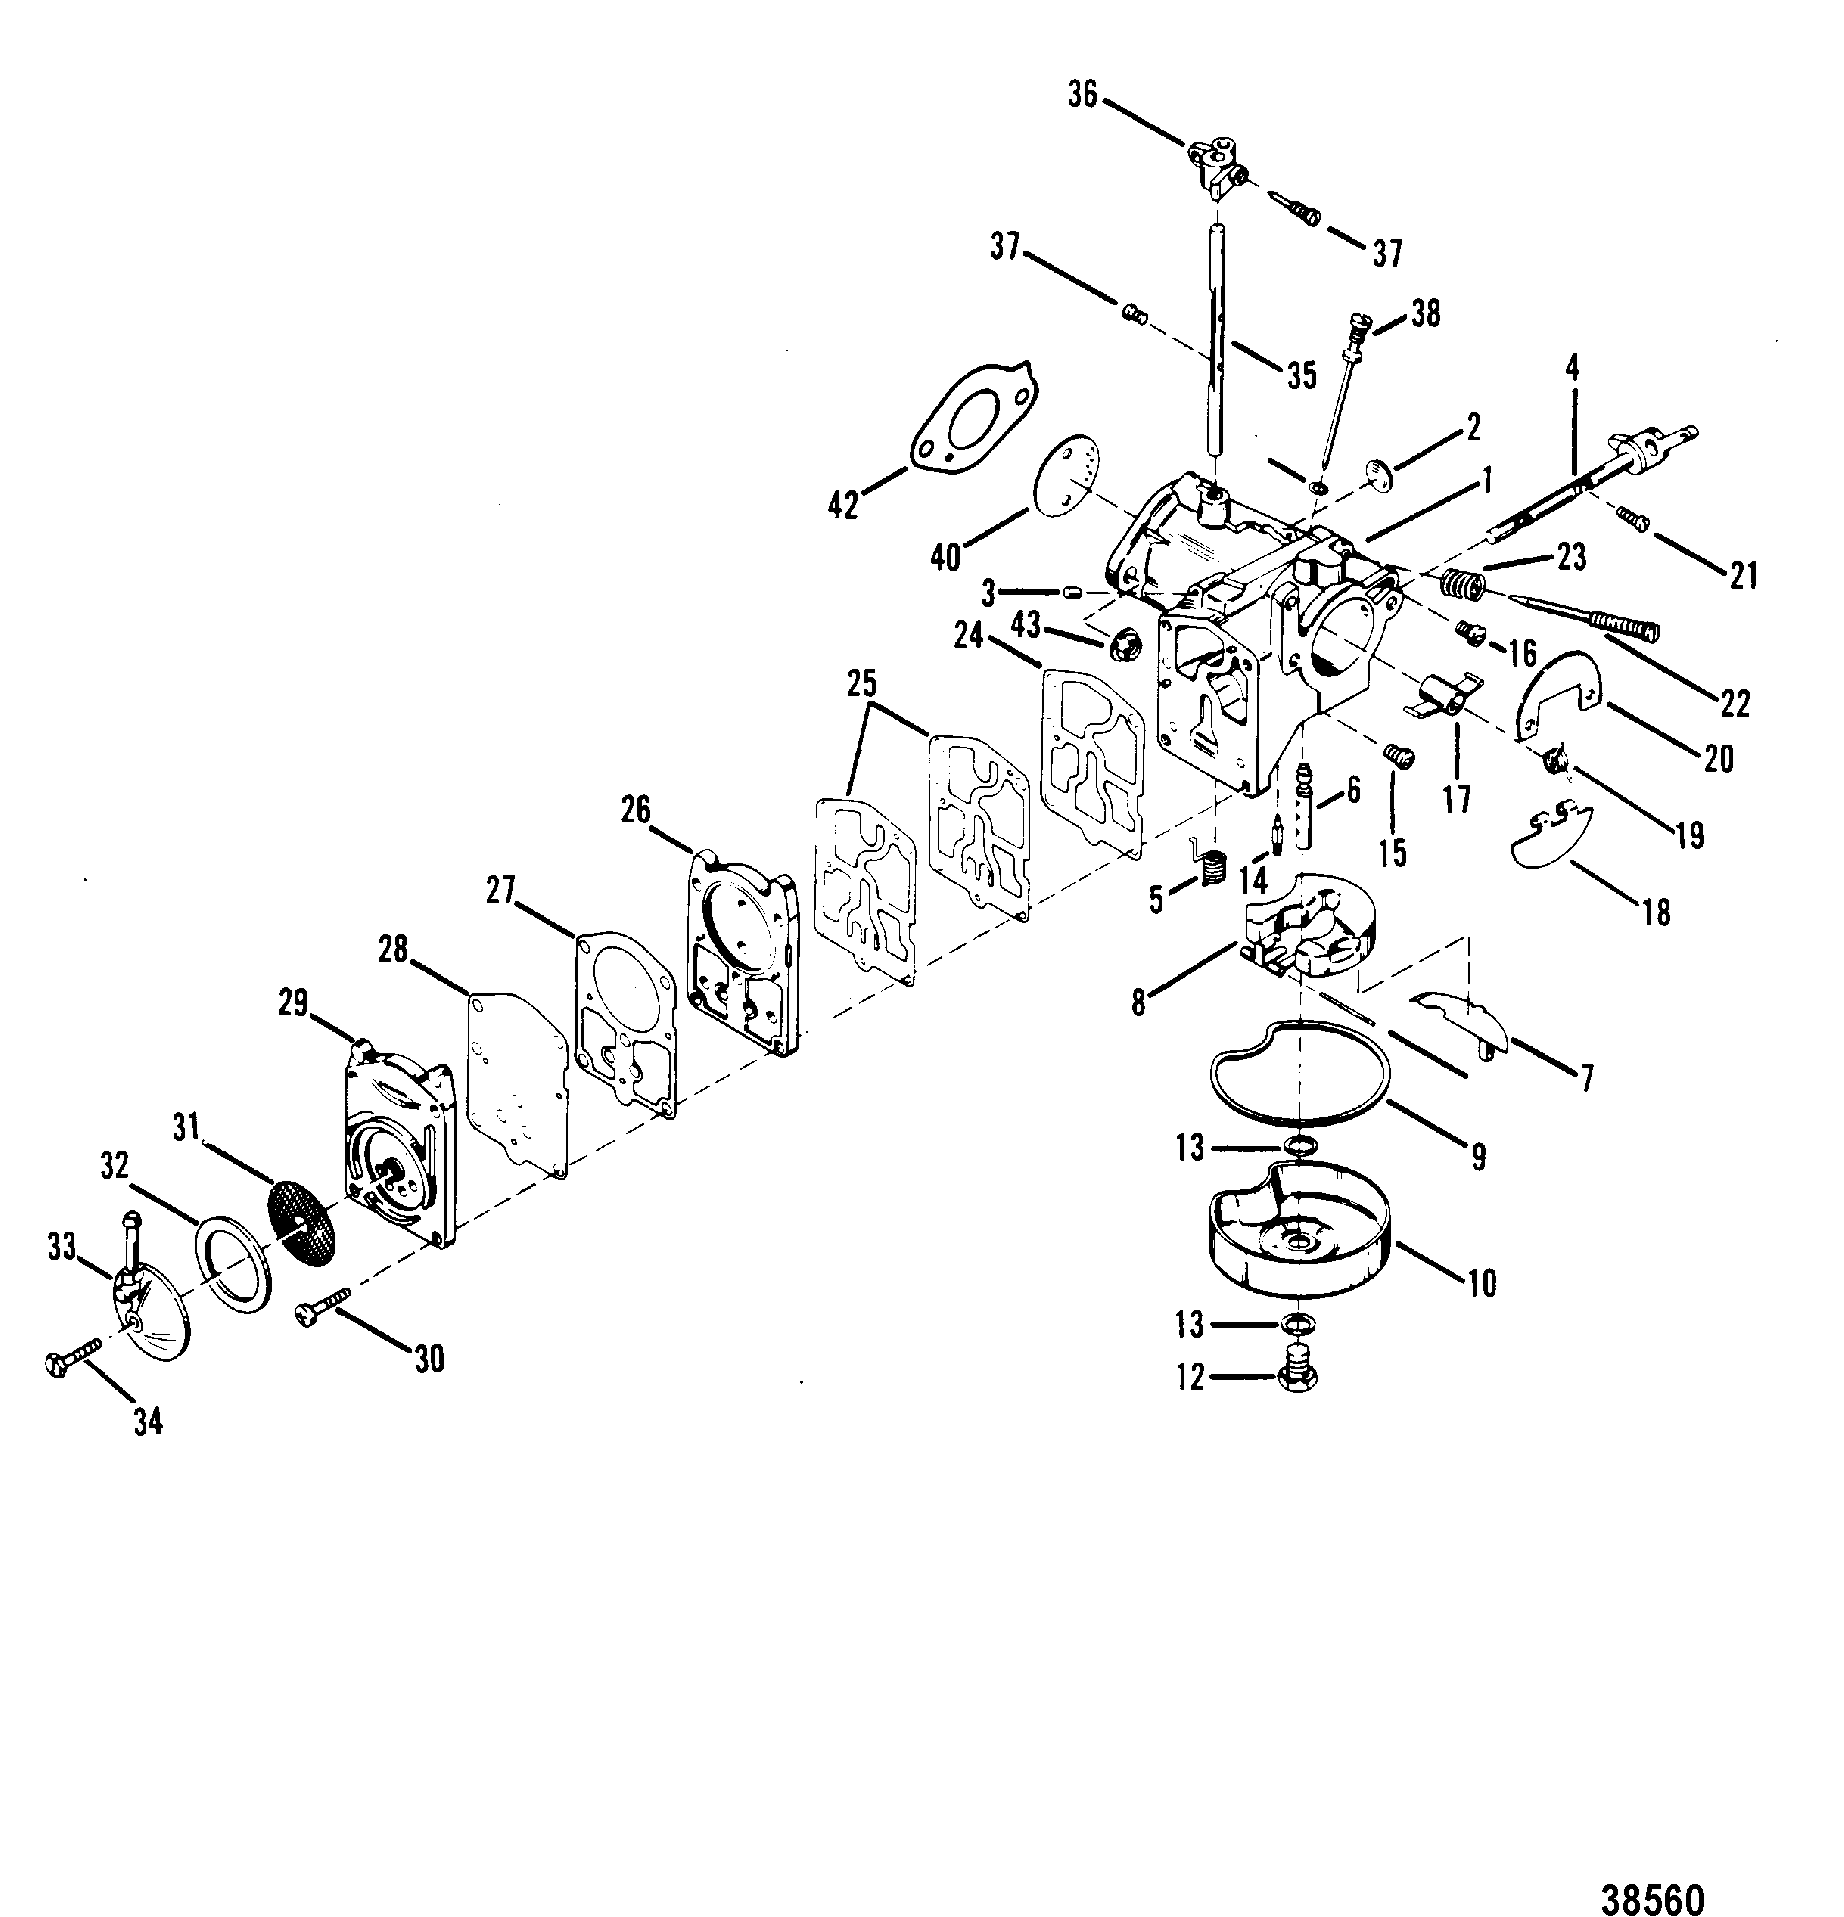 8 Hp Mercury Outboard Parts Diagram, 8, Get Free Image